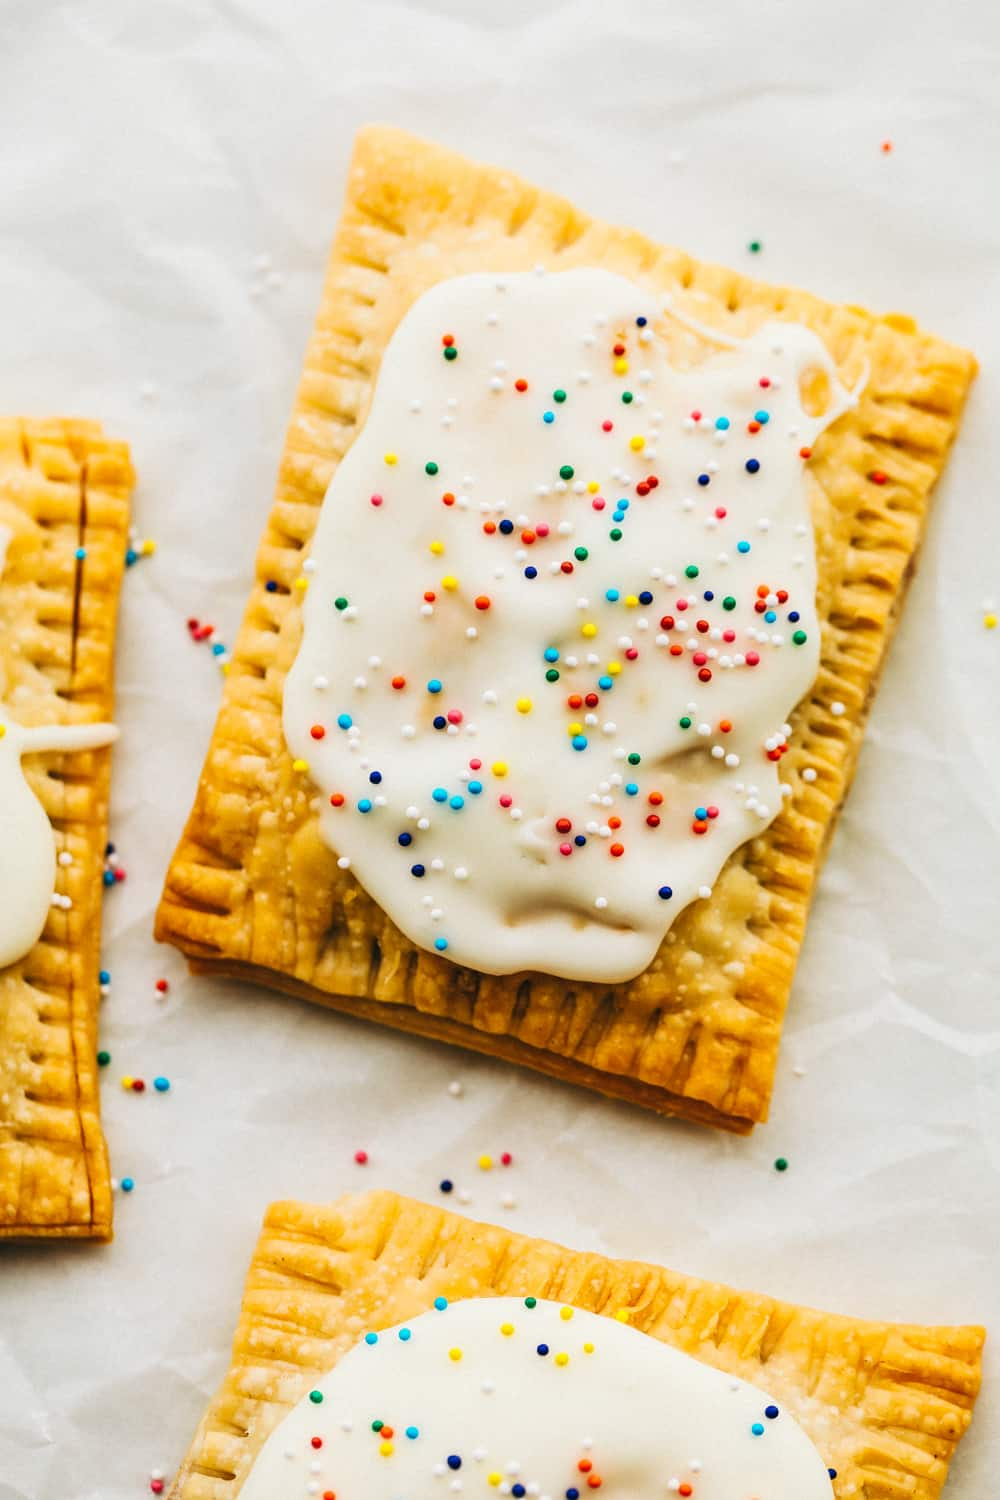 Strawberry homemade pop tart with frosting and sprinkles.